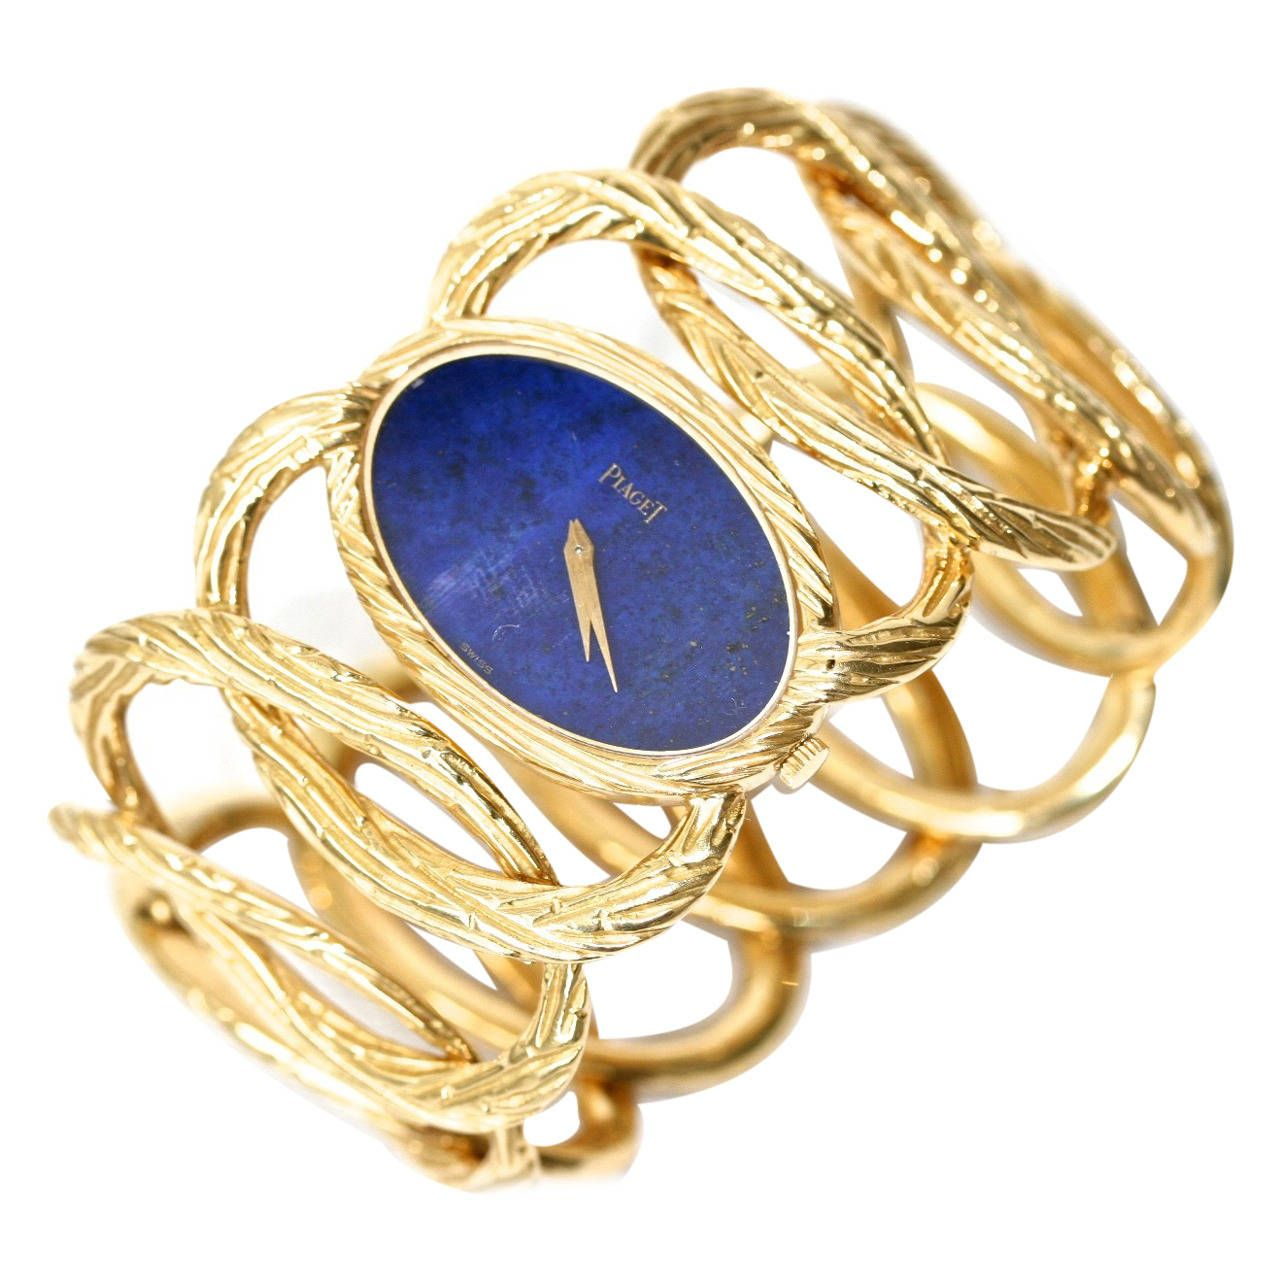 PIAGET 1970s Gold and Lapis Bracelet Watch in 2019 ...